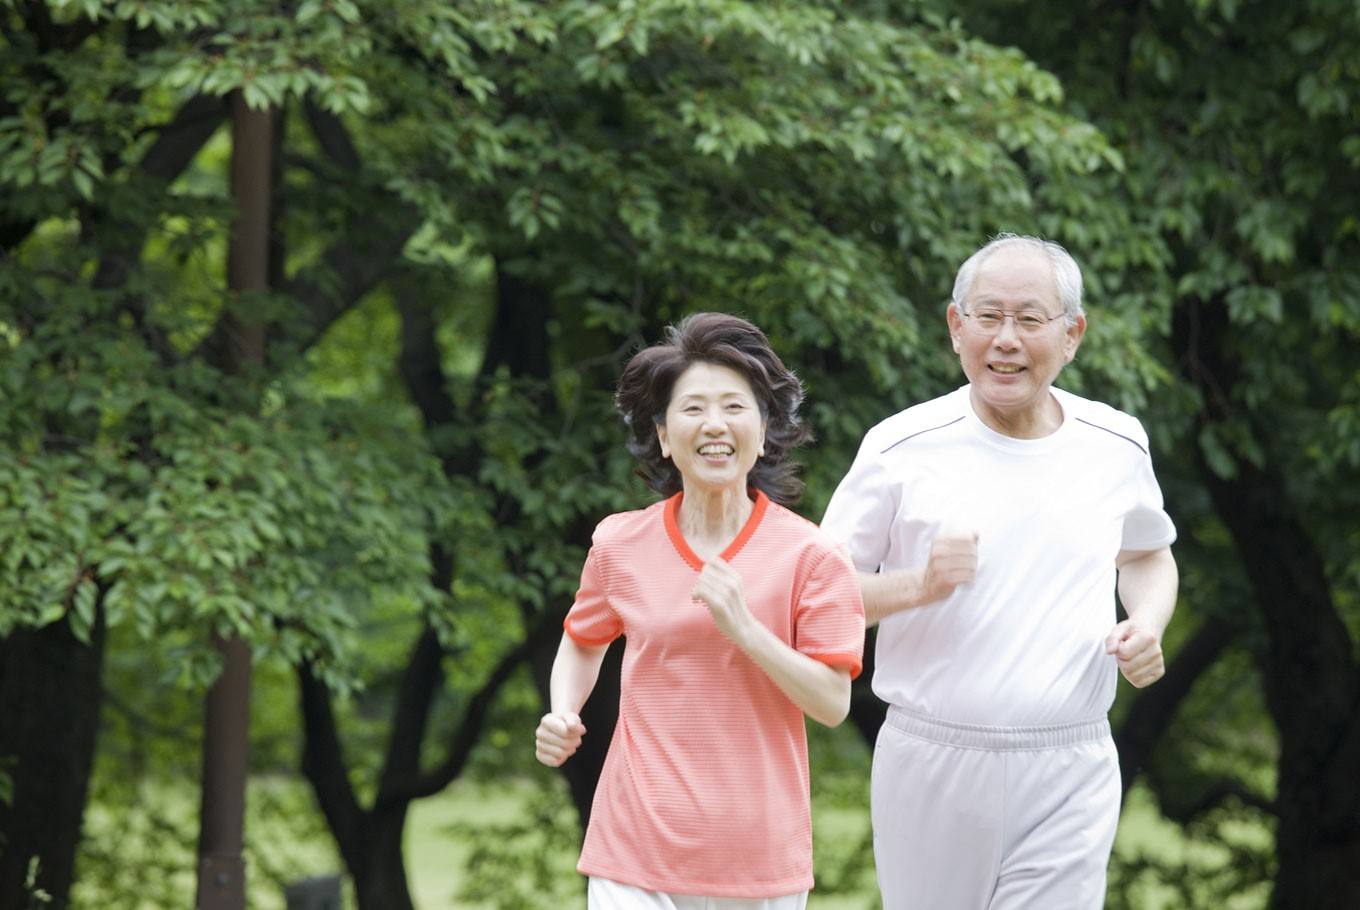 Do Asians really age more slowly?